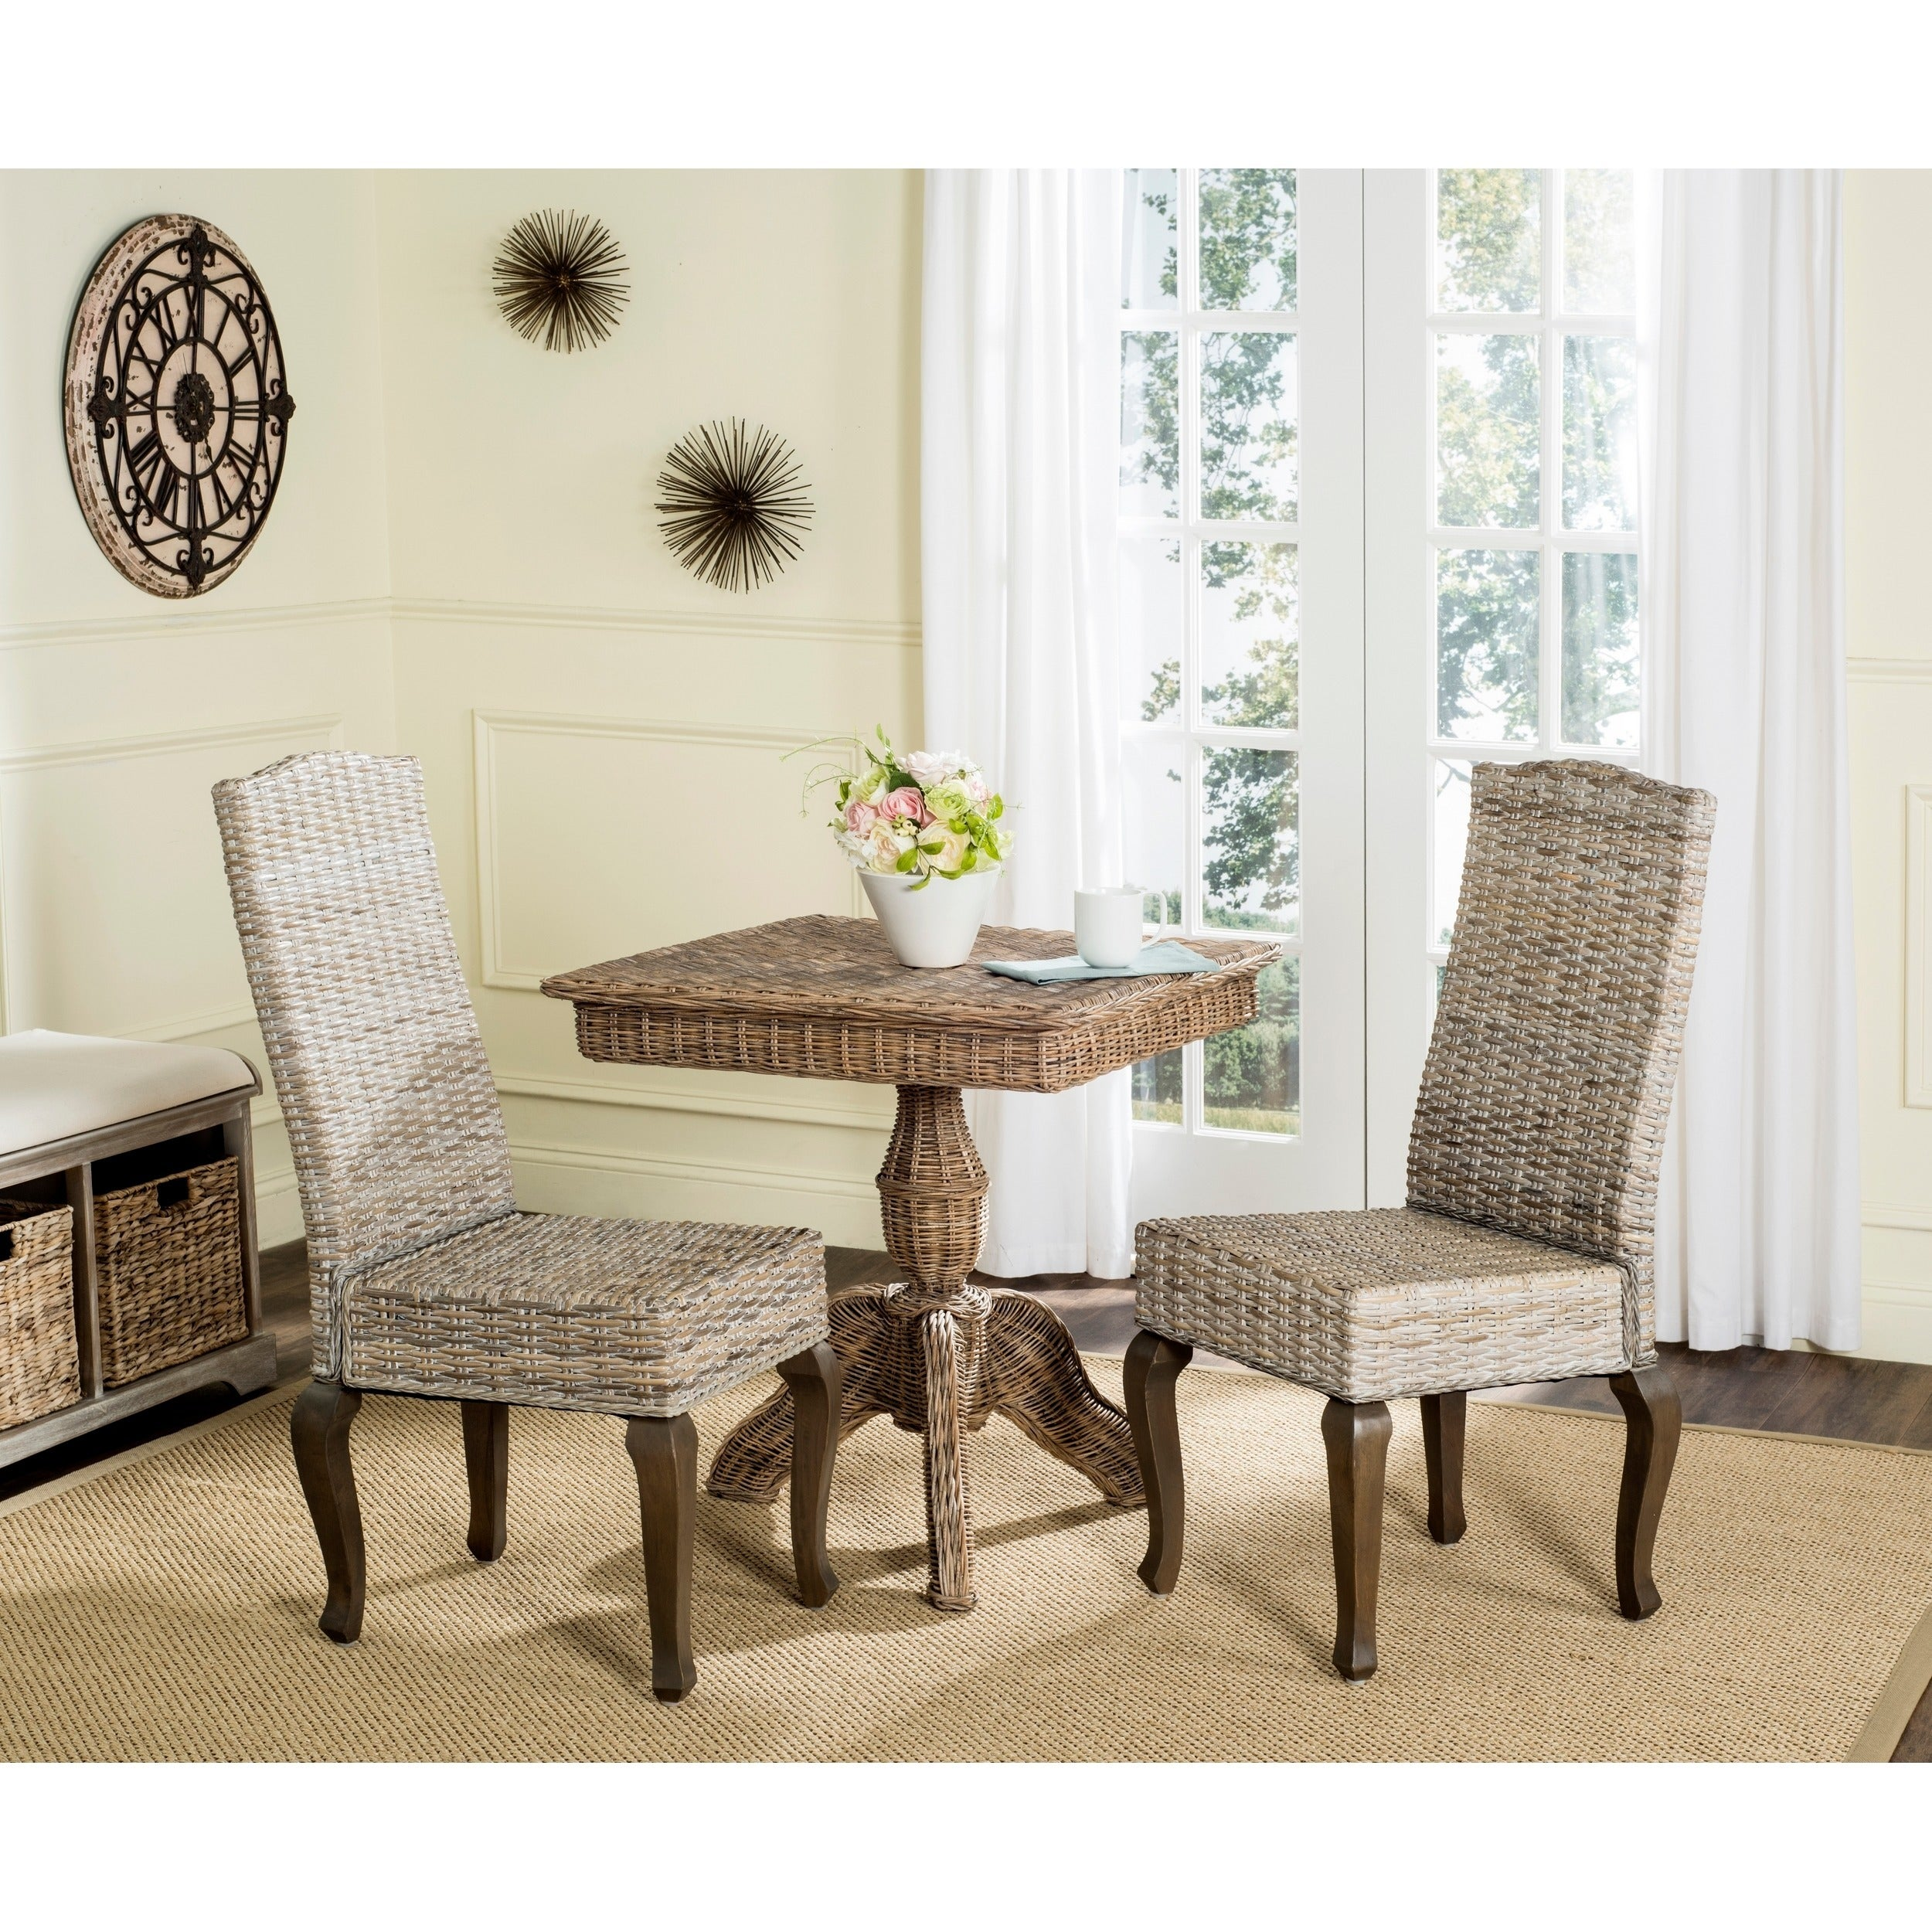 Shop safavieh rural woven dining milos white washed dining chairs set of 2 on sale free shipping today overstock com 10856982